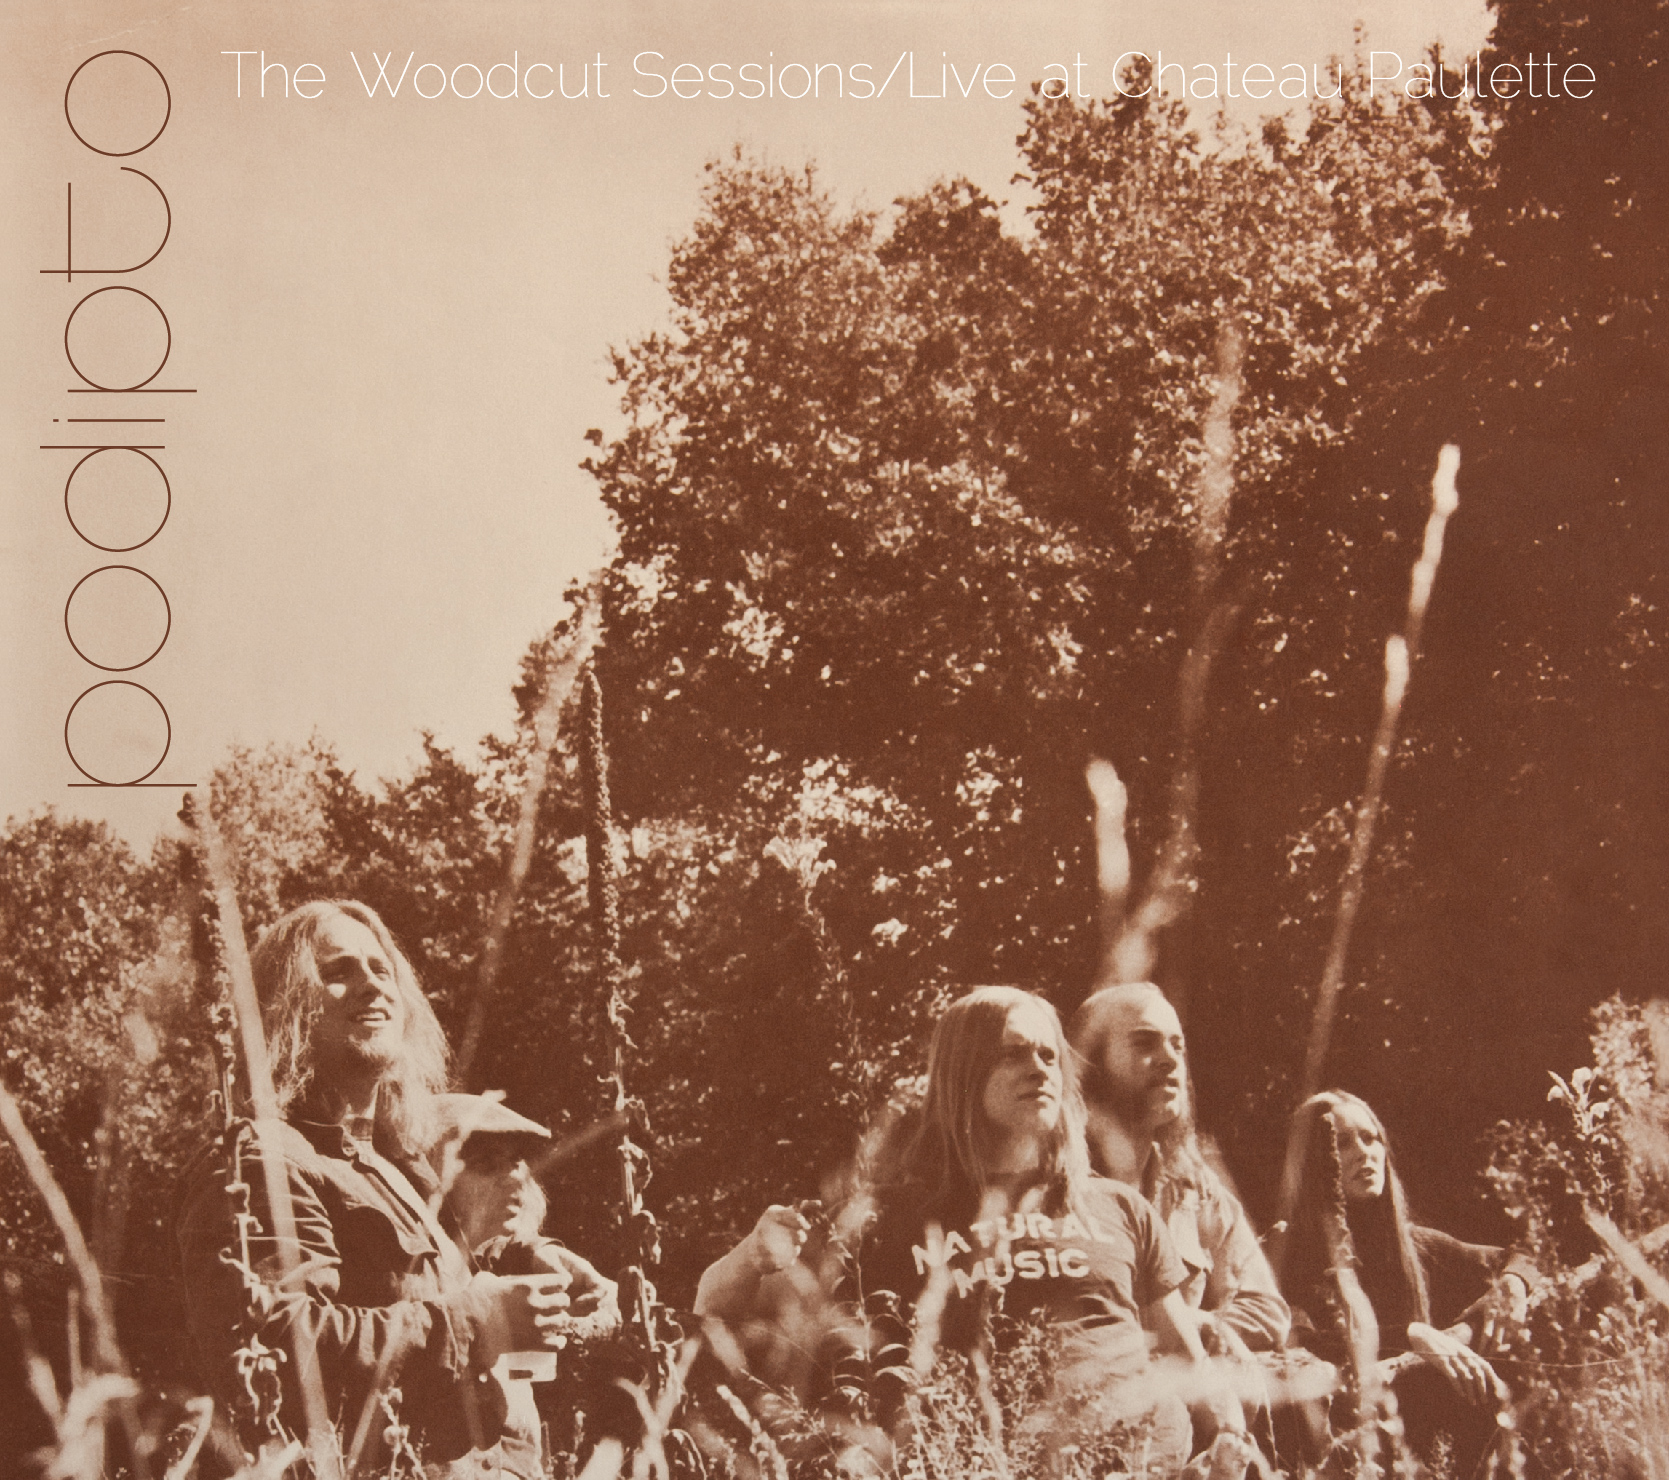 The Woodcut Sessions / Live at Chateau Paulette  is now available on CD and digital download in the Podipto.com store.